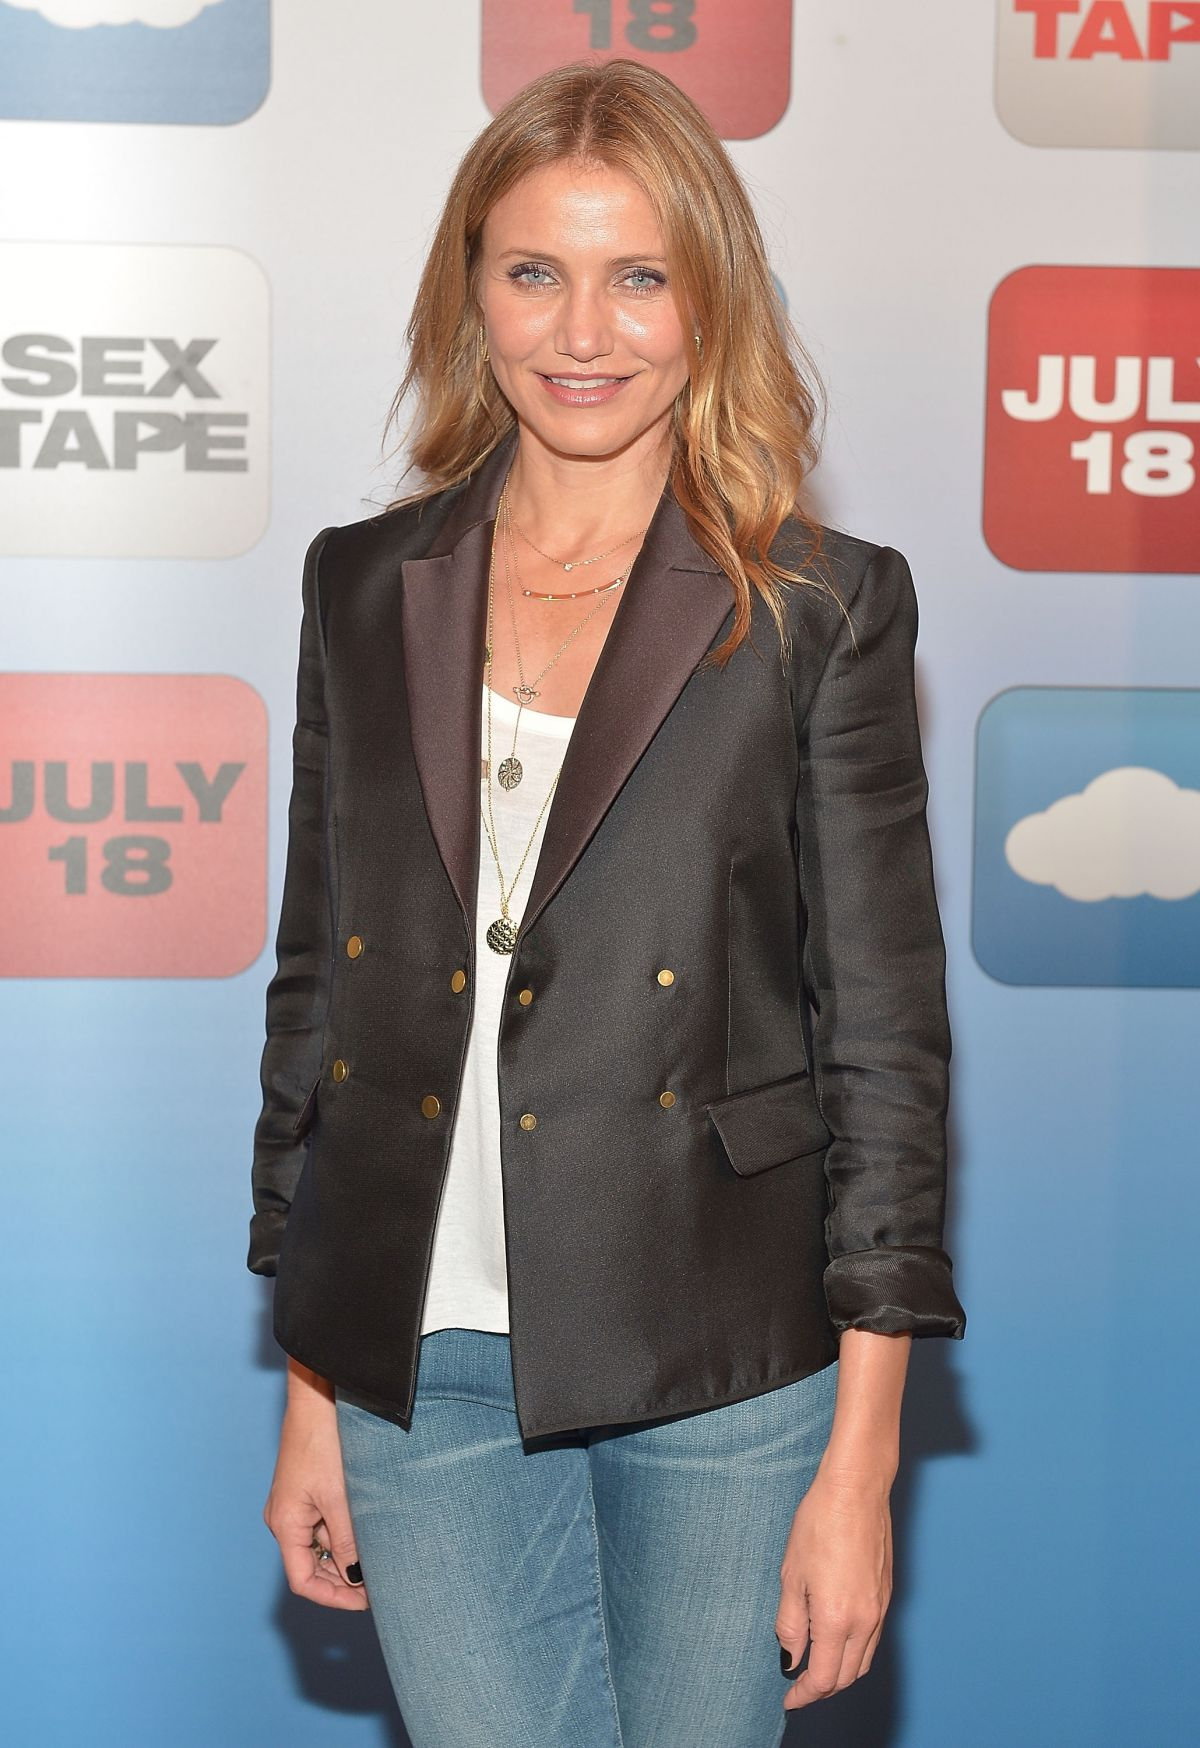 CAMERON DIAZ at S.. Tape Photocall in Beverly Hills